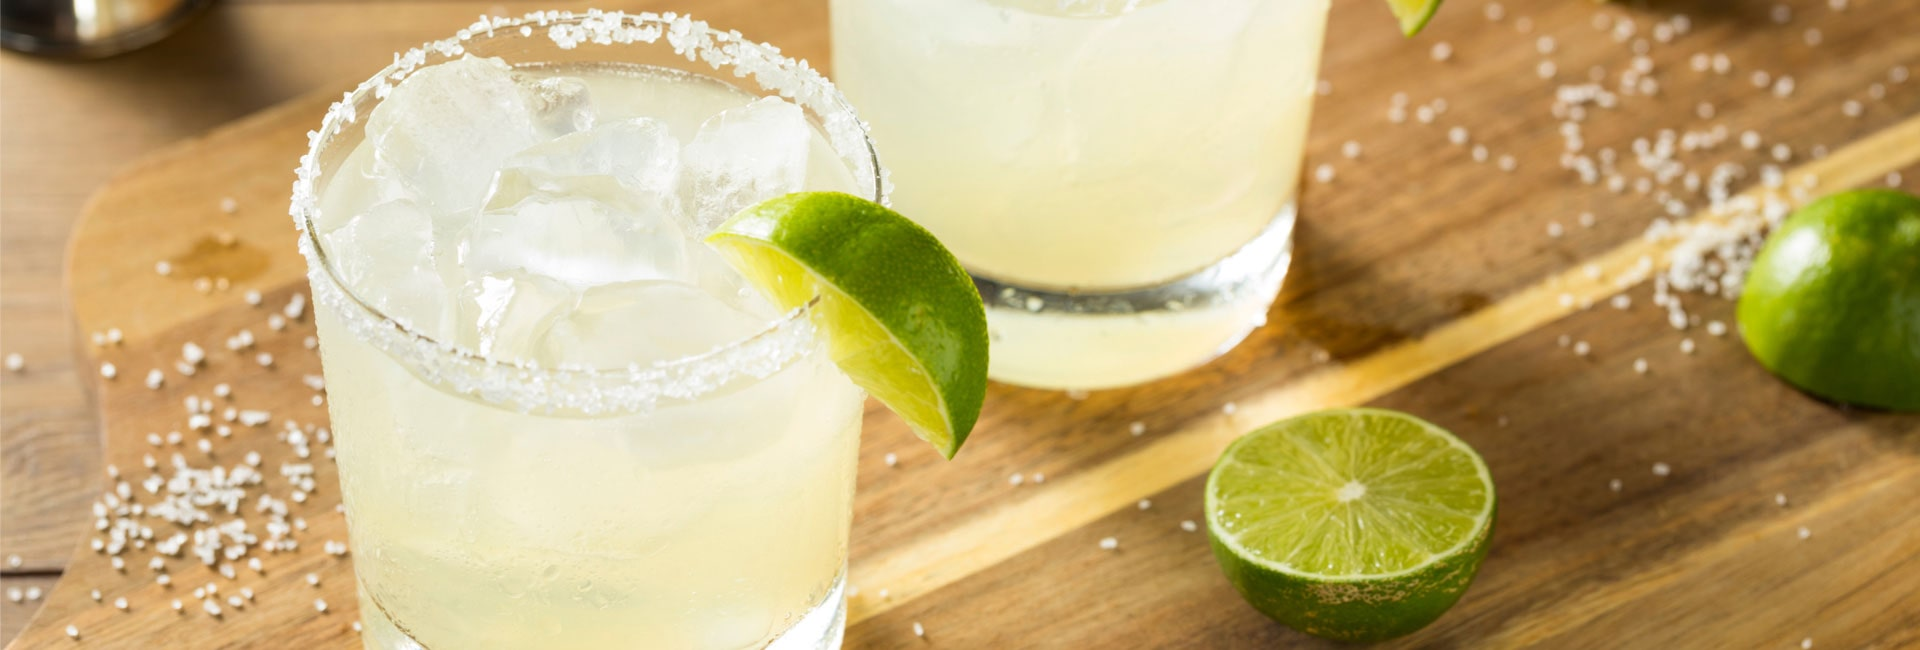 How to margarita recipe